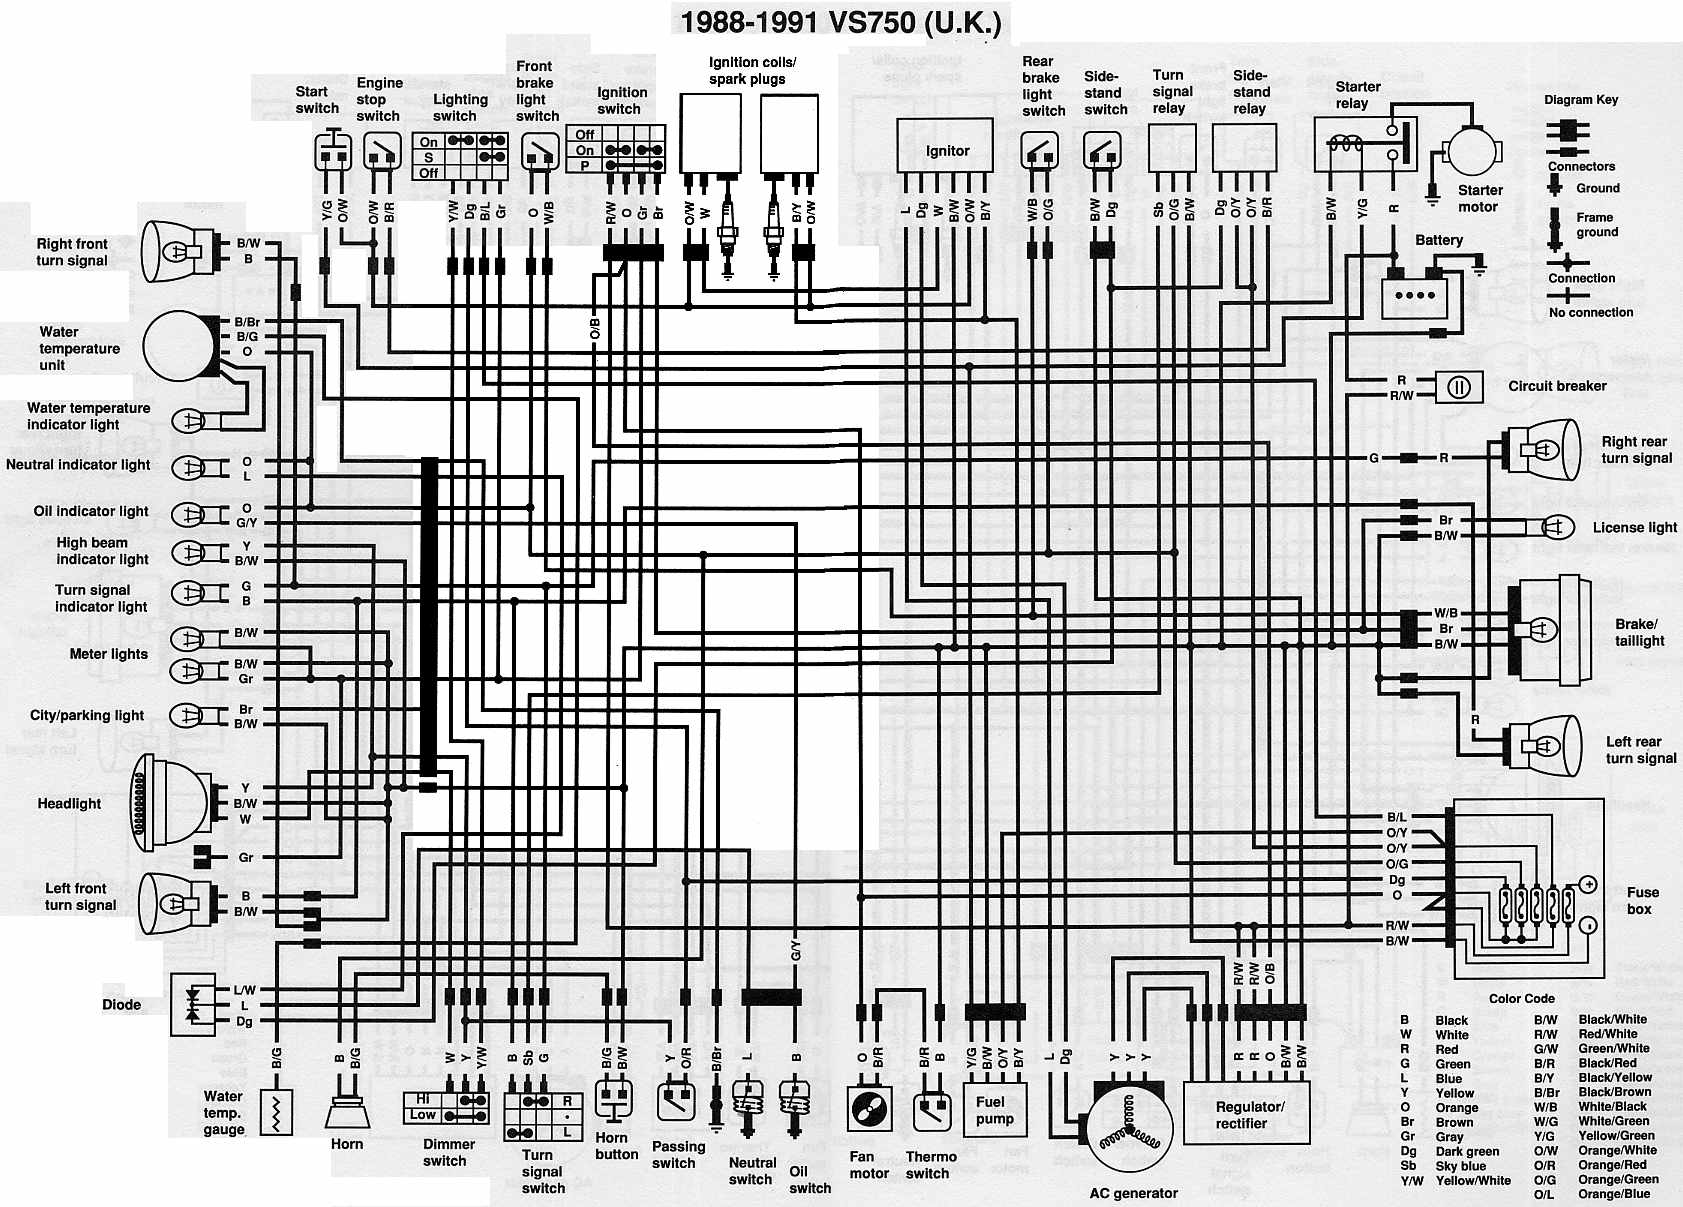 2003 jetta tdi wiring diagram teeth names for 2010 vw